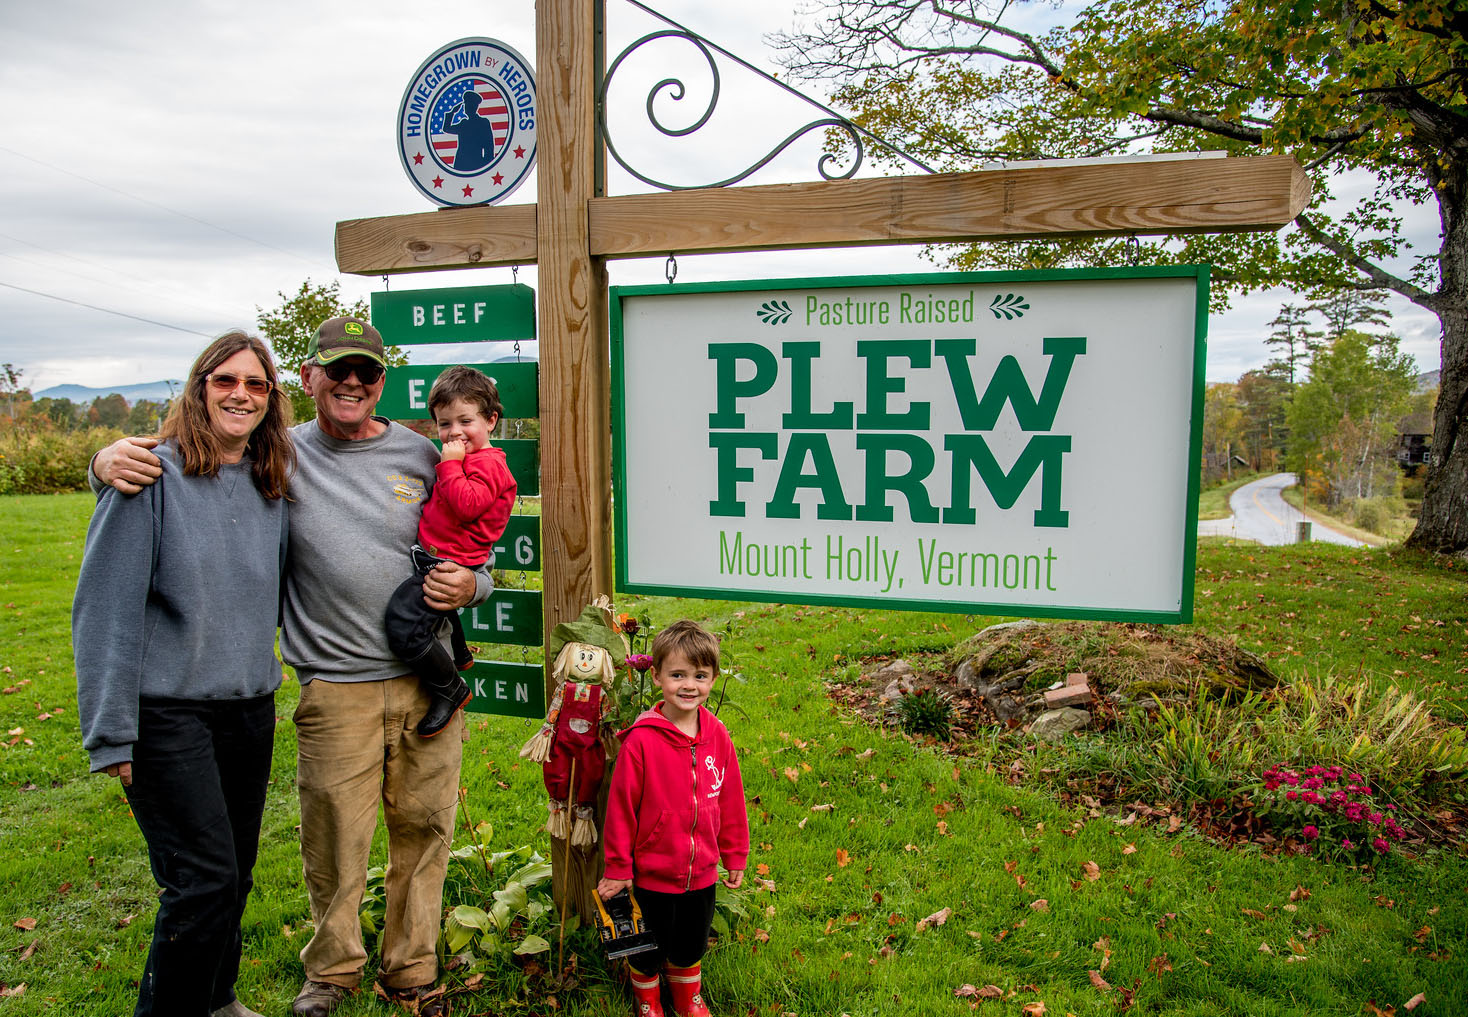 The Plew Family of Mount Holly Vermont